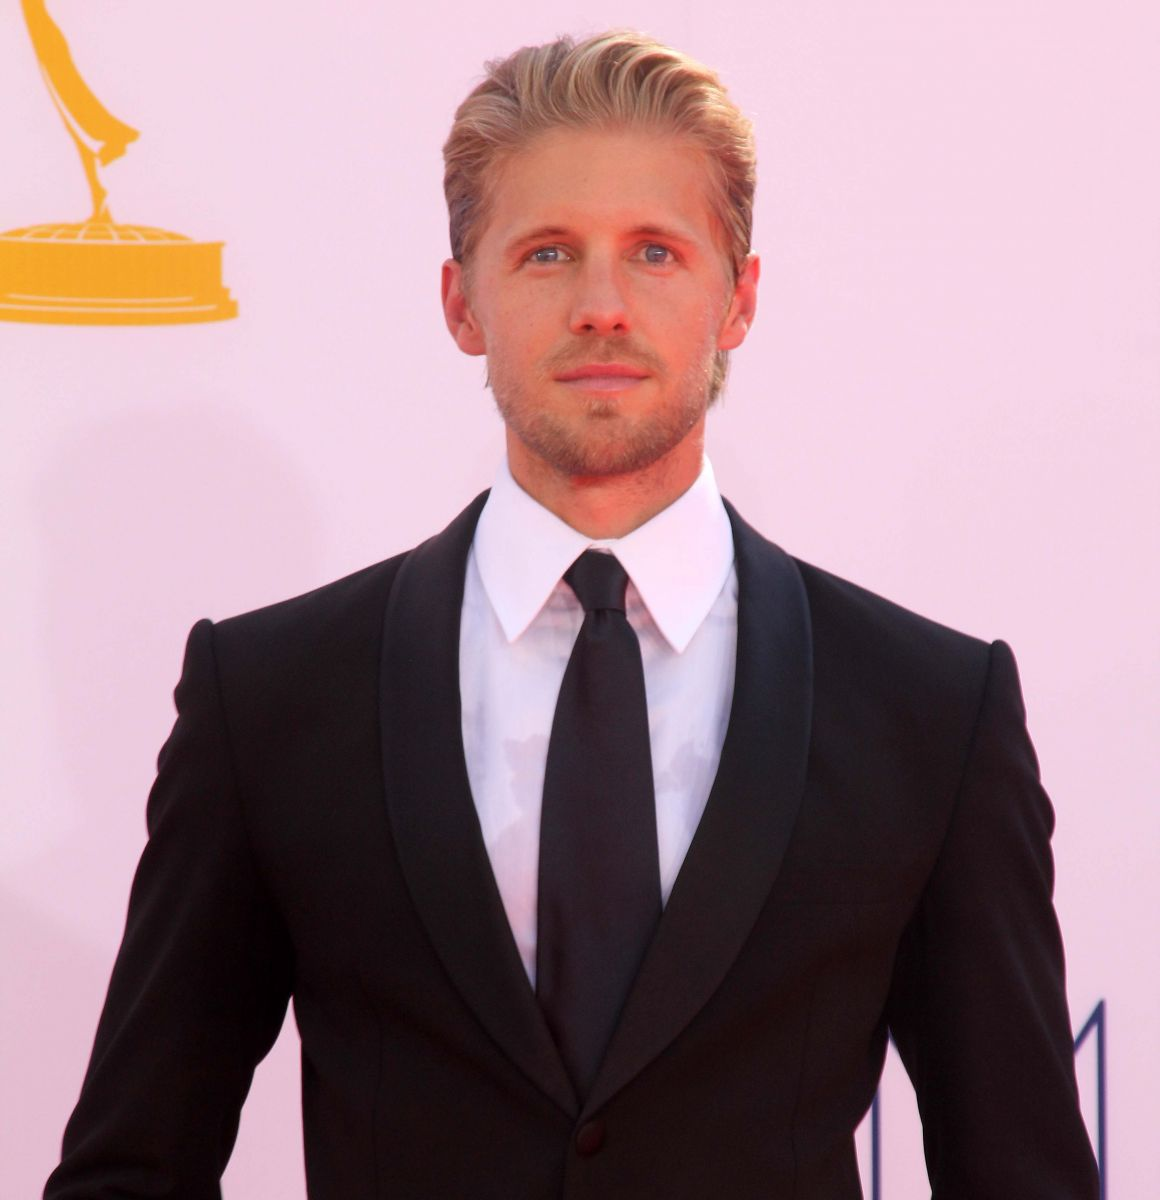 Matt Barr Not Dating Anyone? Actor With Such Looks Cannot Be Single - Or Can He?